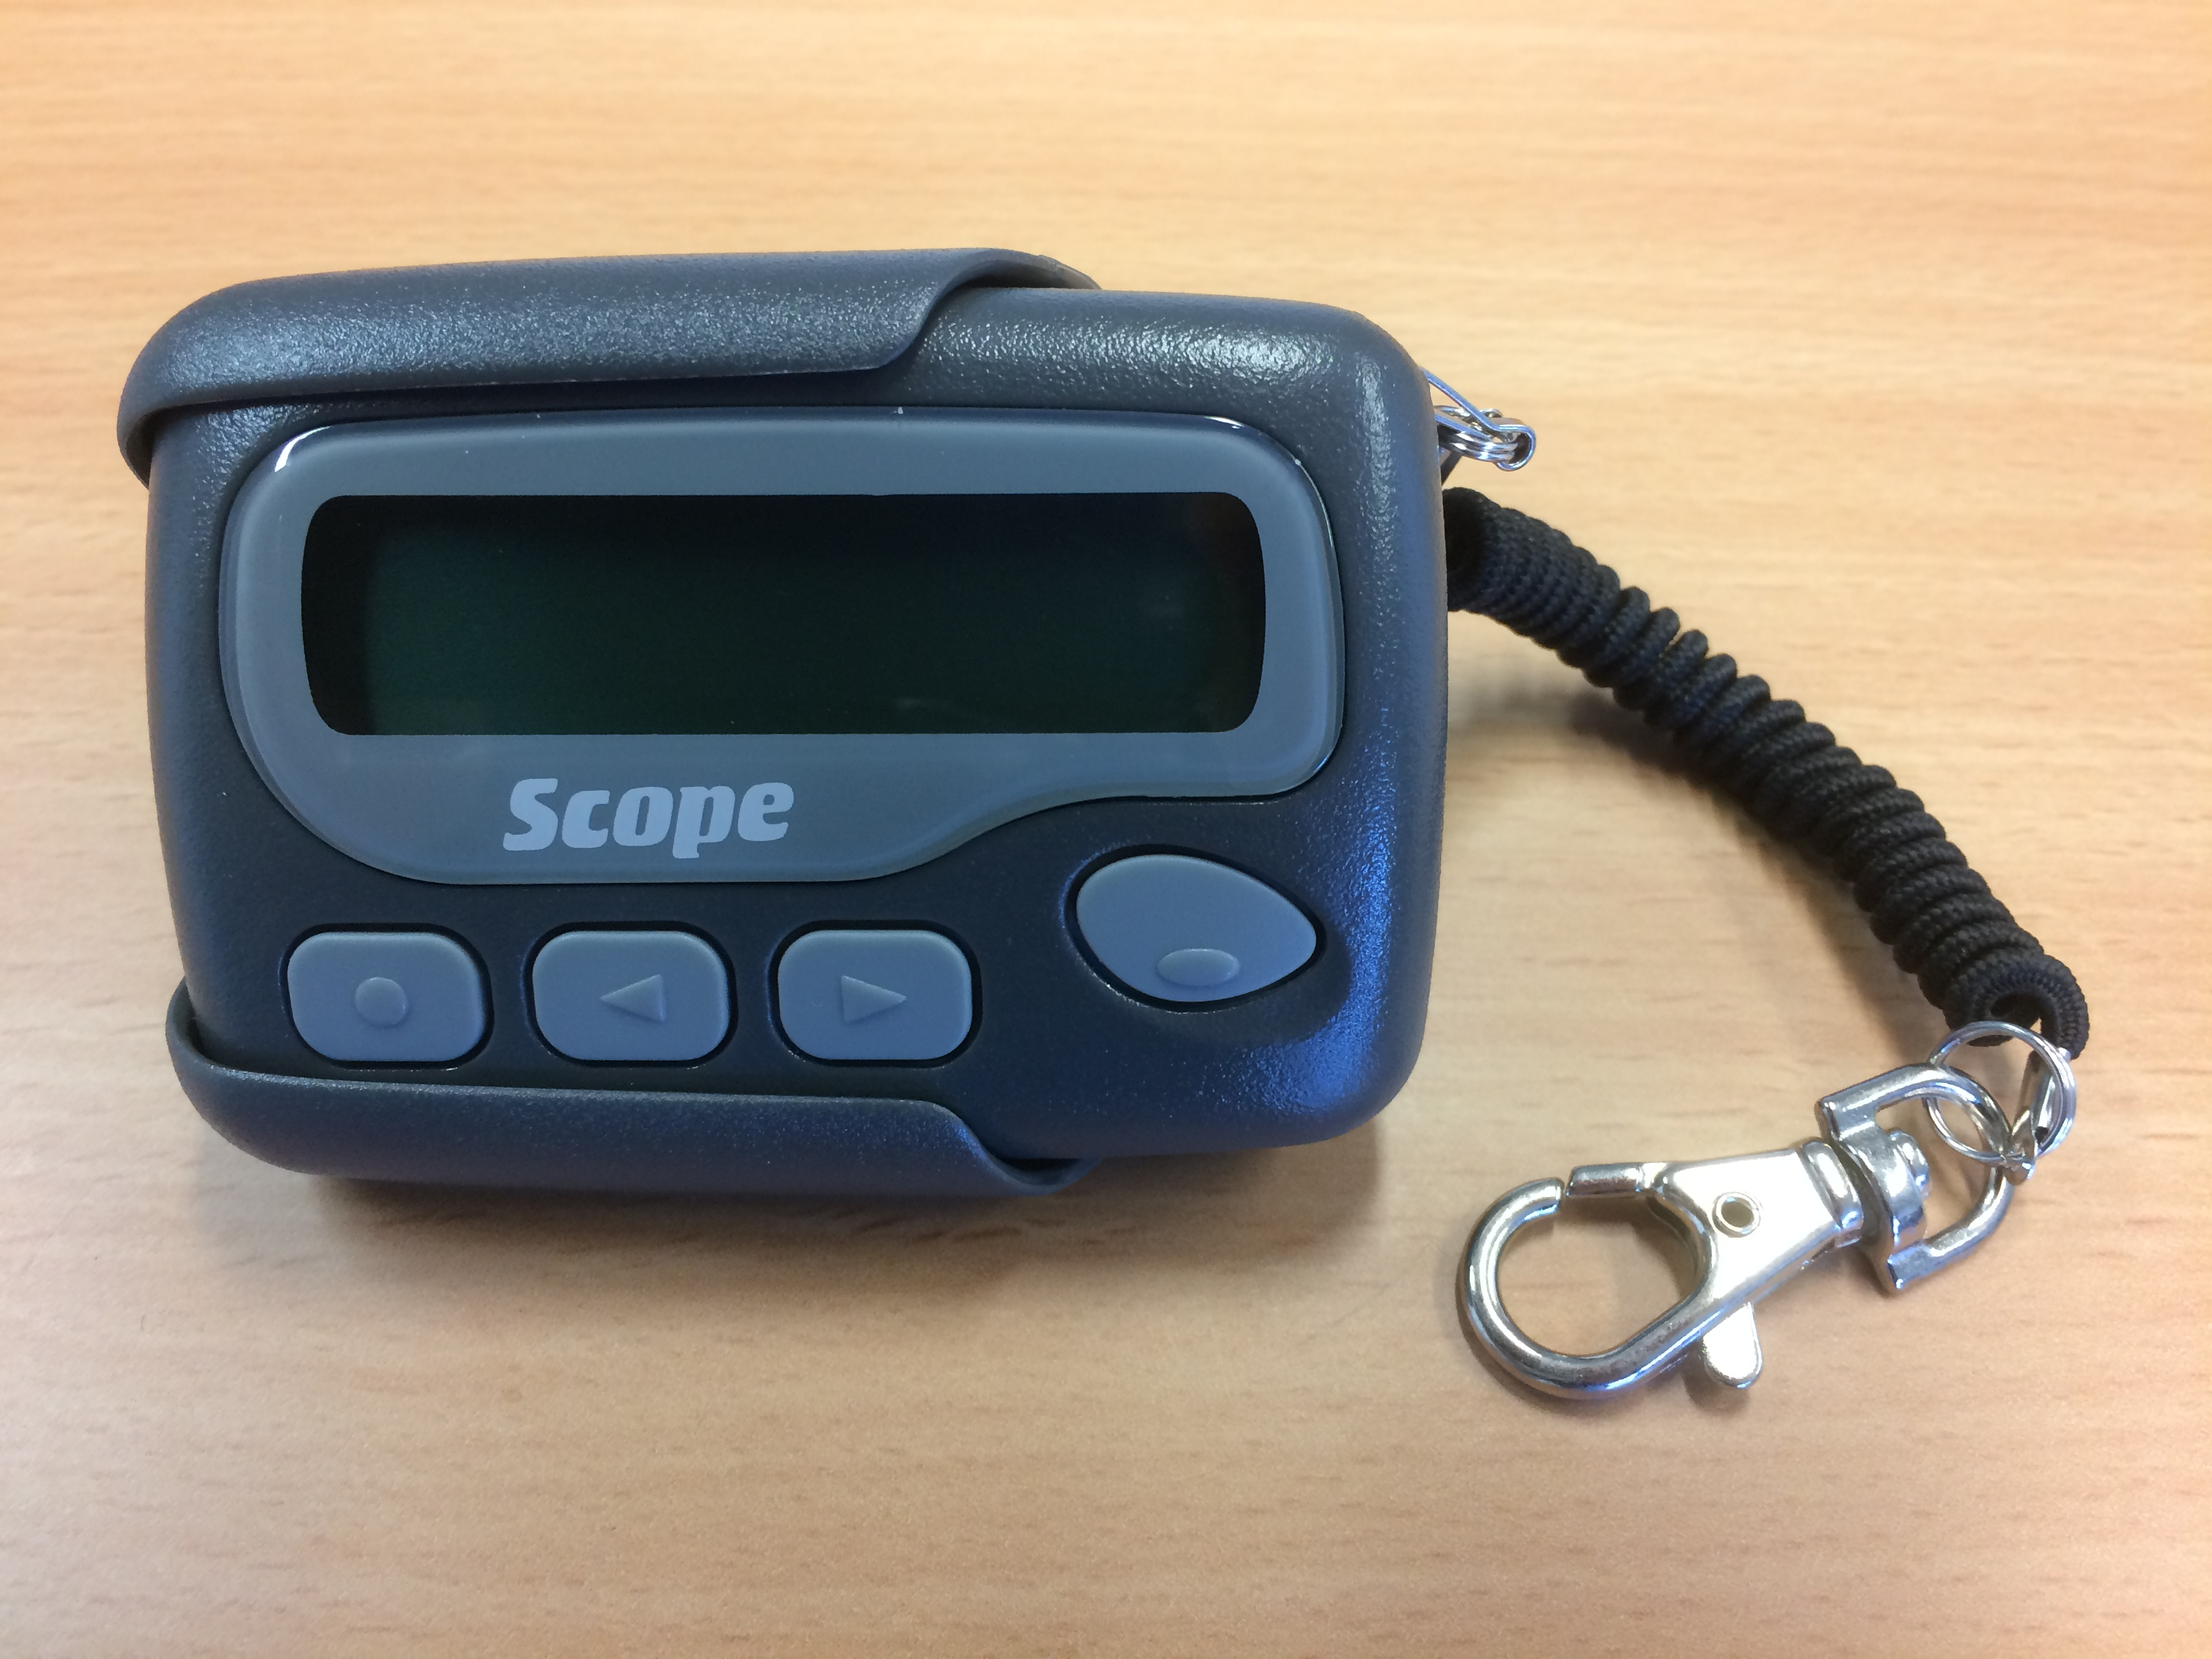 Scope Nursecall Staff Pager